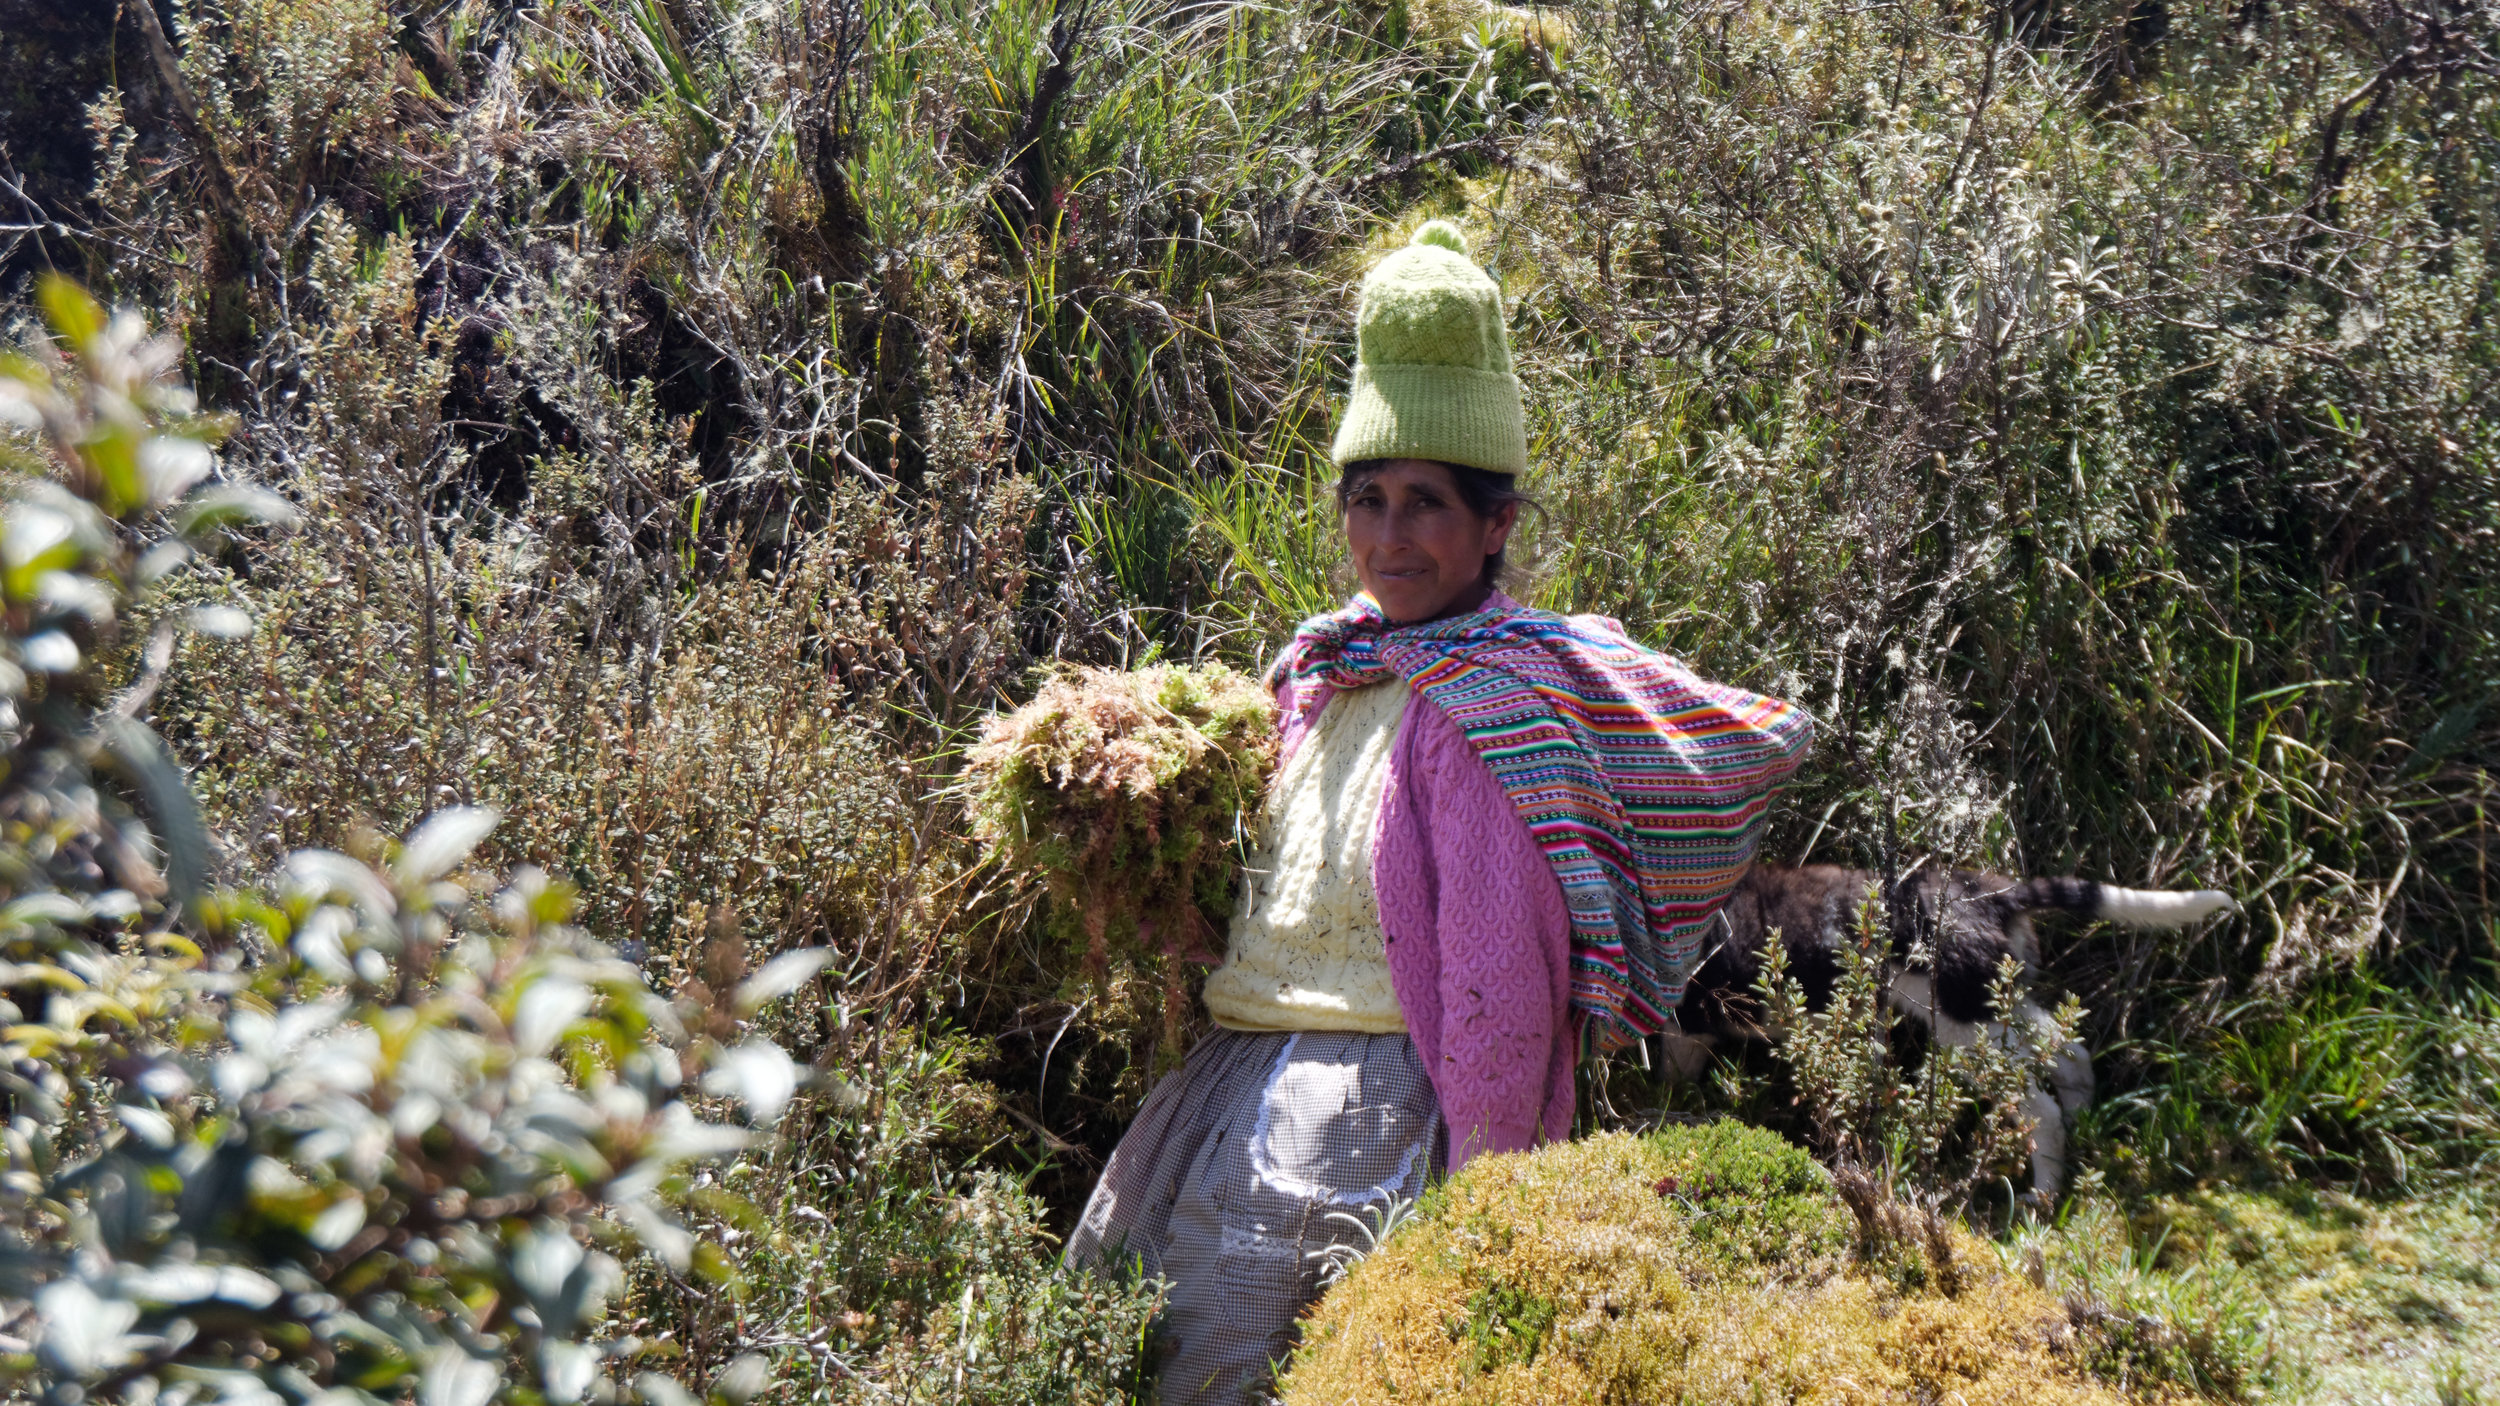 INKA MOSS      Farmers use solar technology to grow moss, overcoming the challenges posed by climate and market prices for more traditional products.